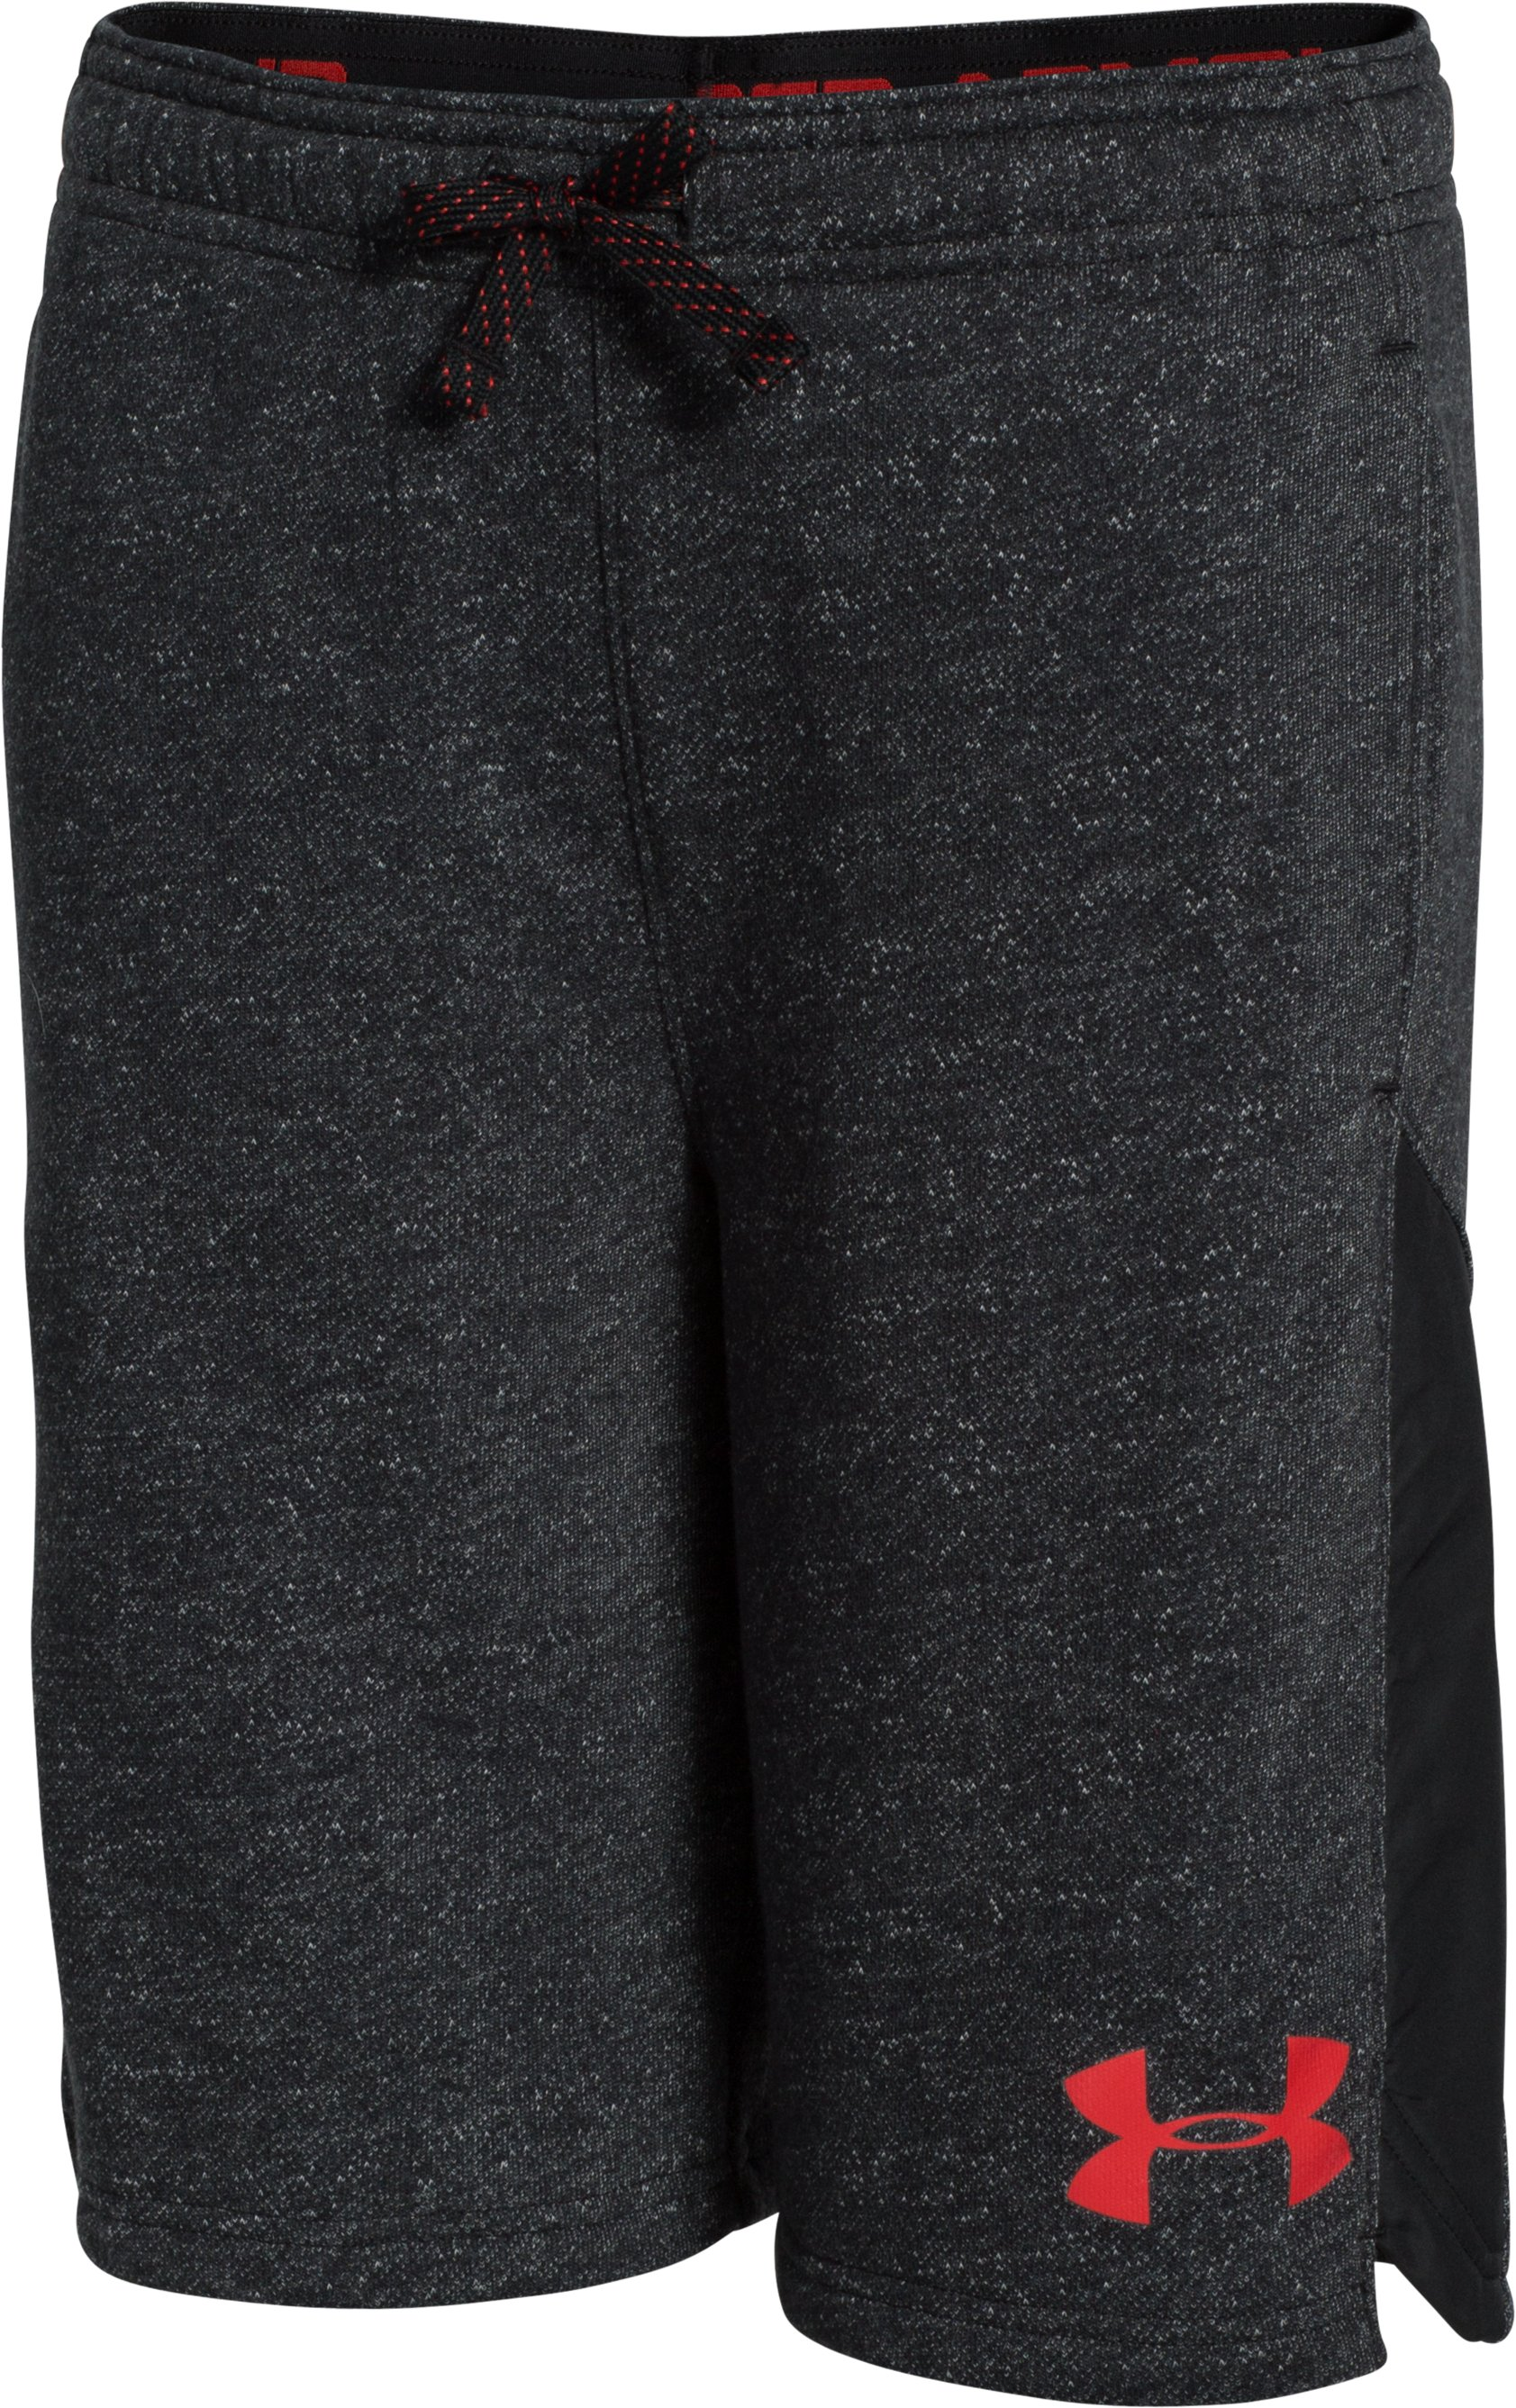 Boys' UA Link Shorts, Black